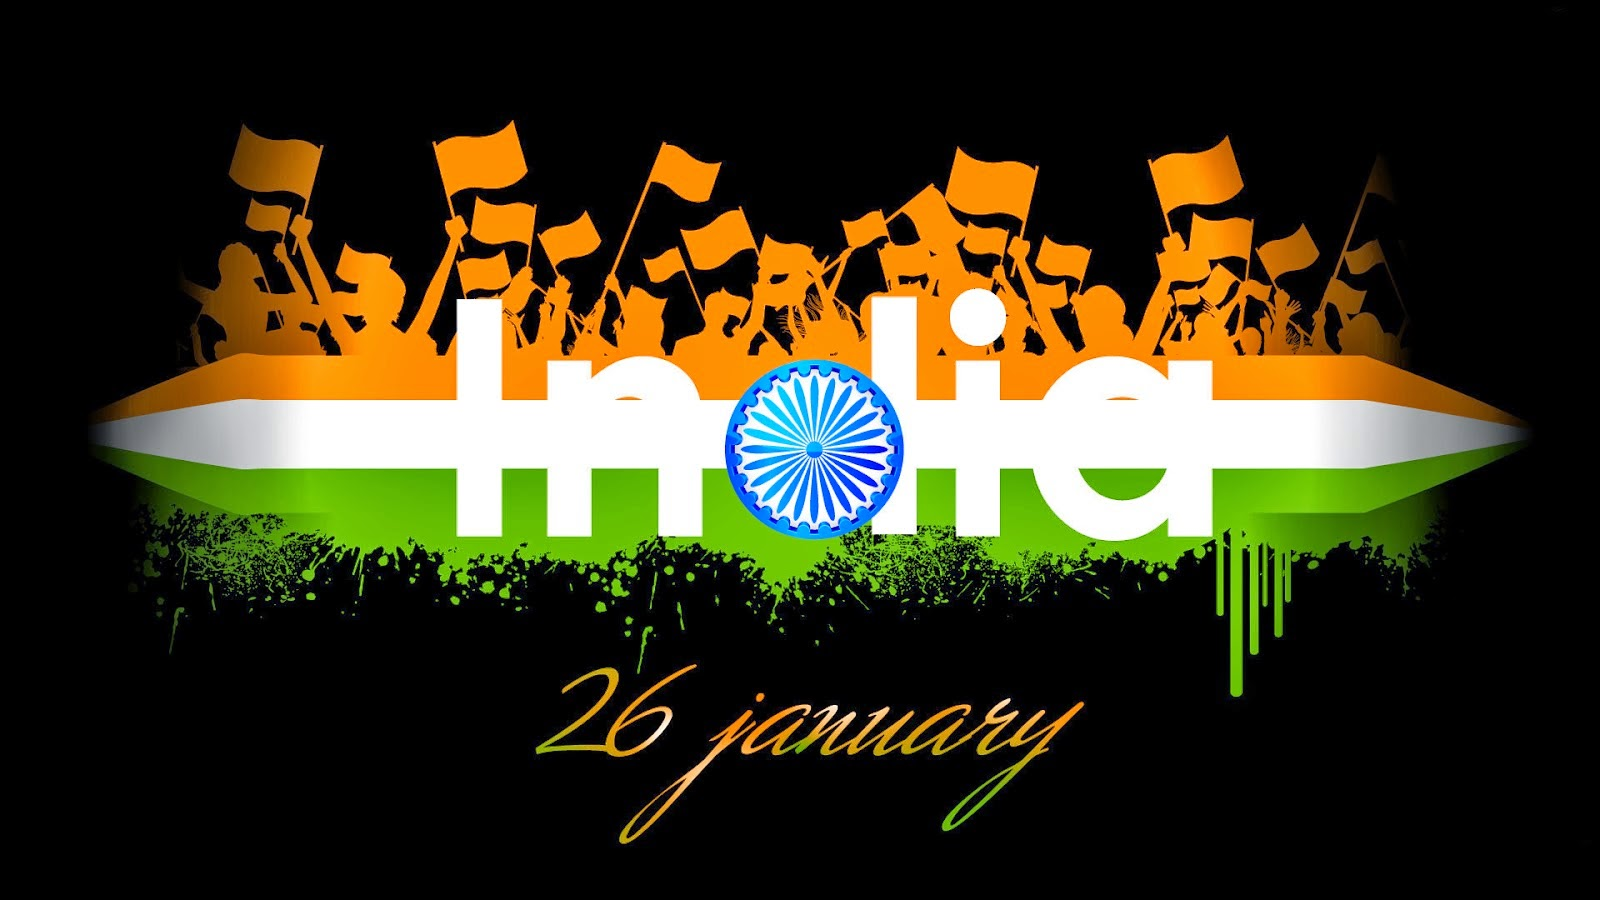 Indian Army Independence Day Wallpaper More Information Modni Auto